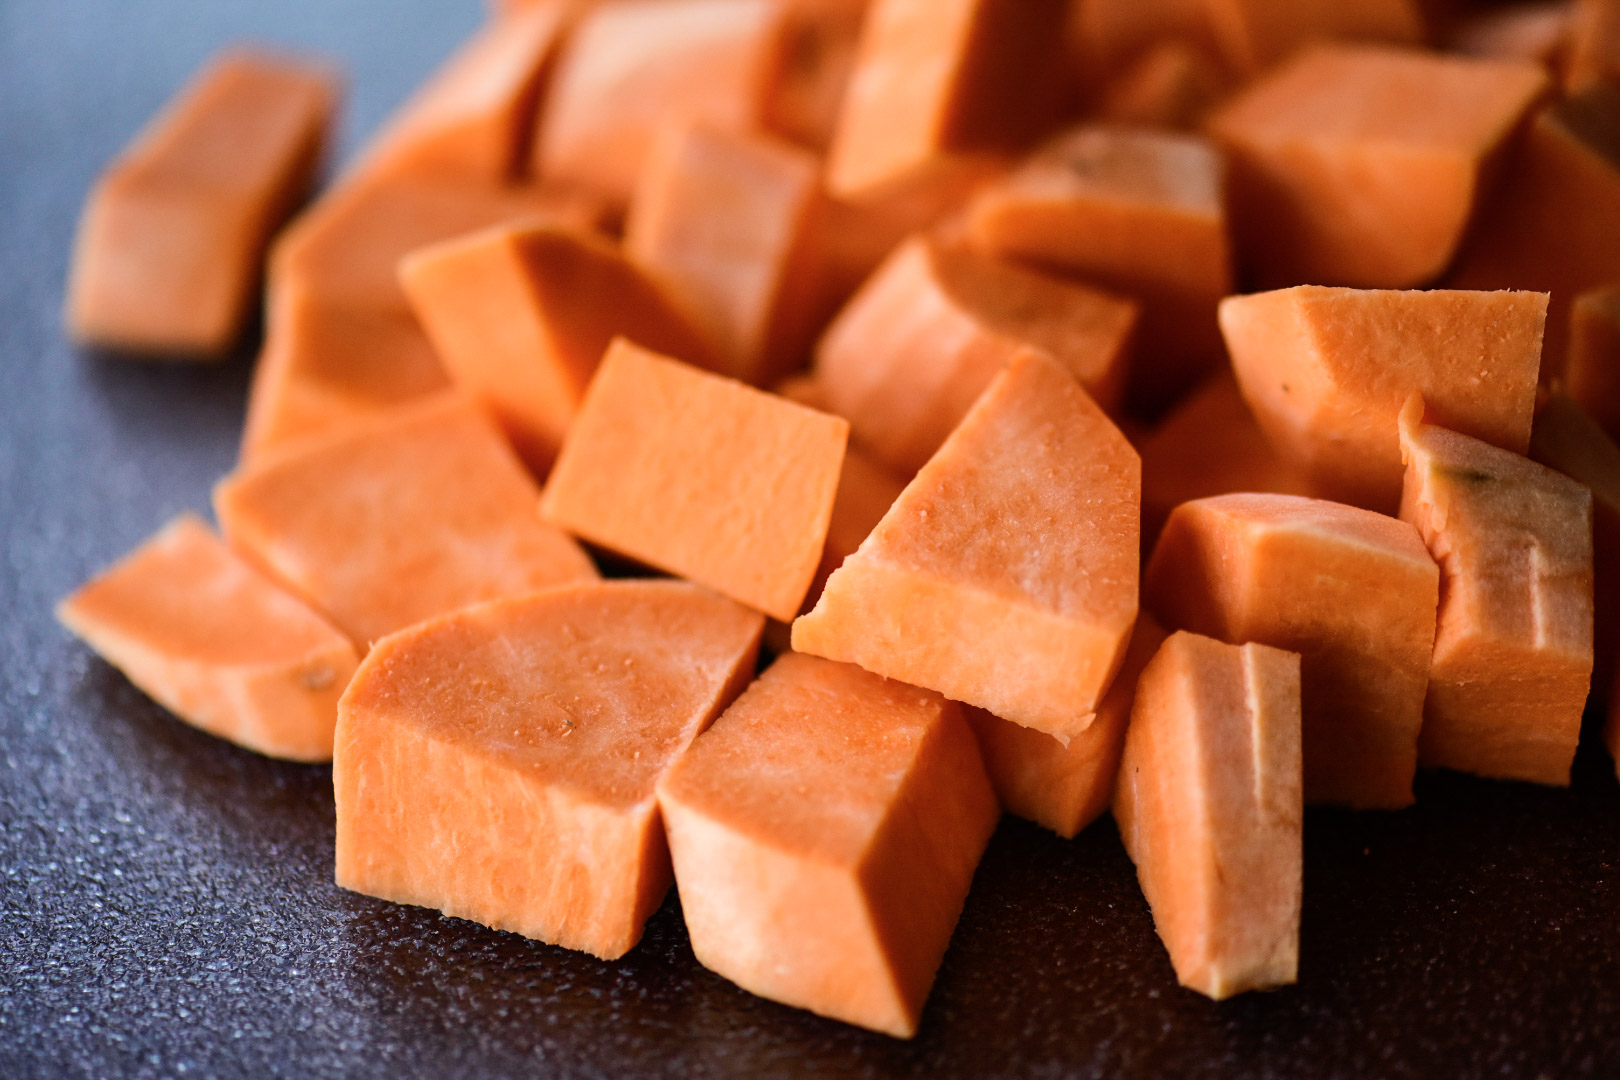 raw and cut sweet potatoes